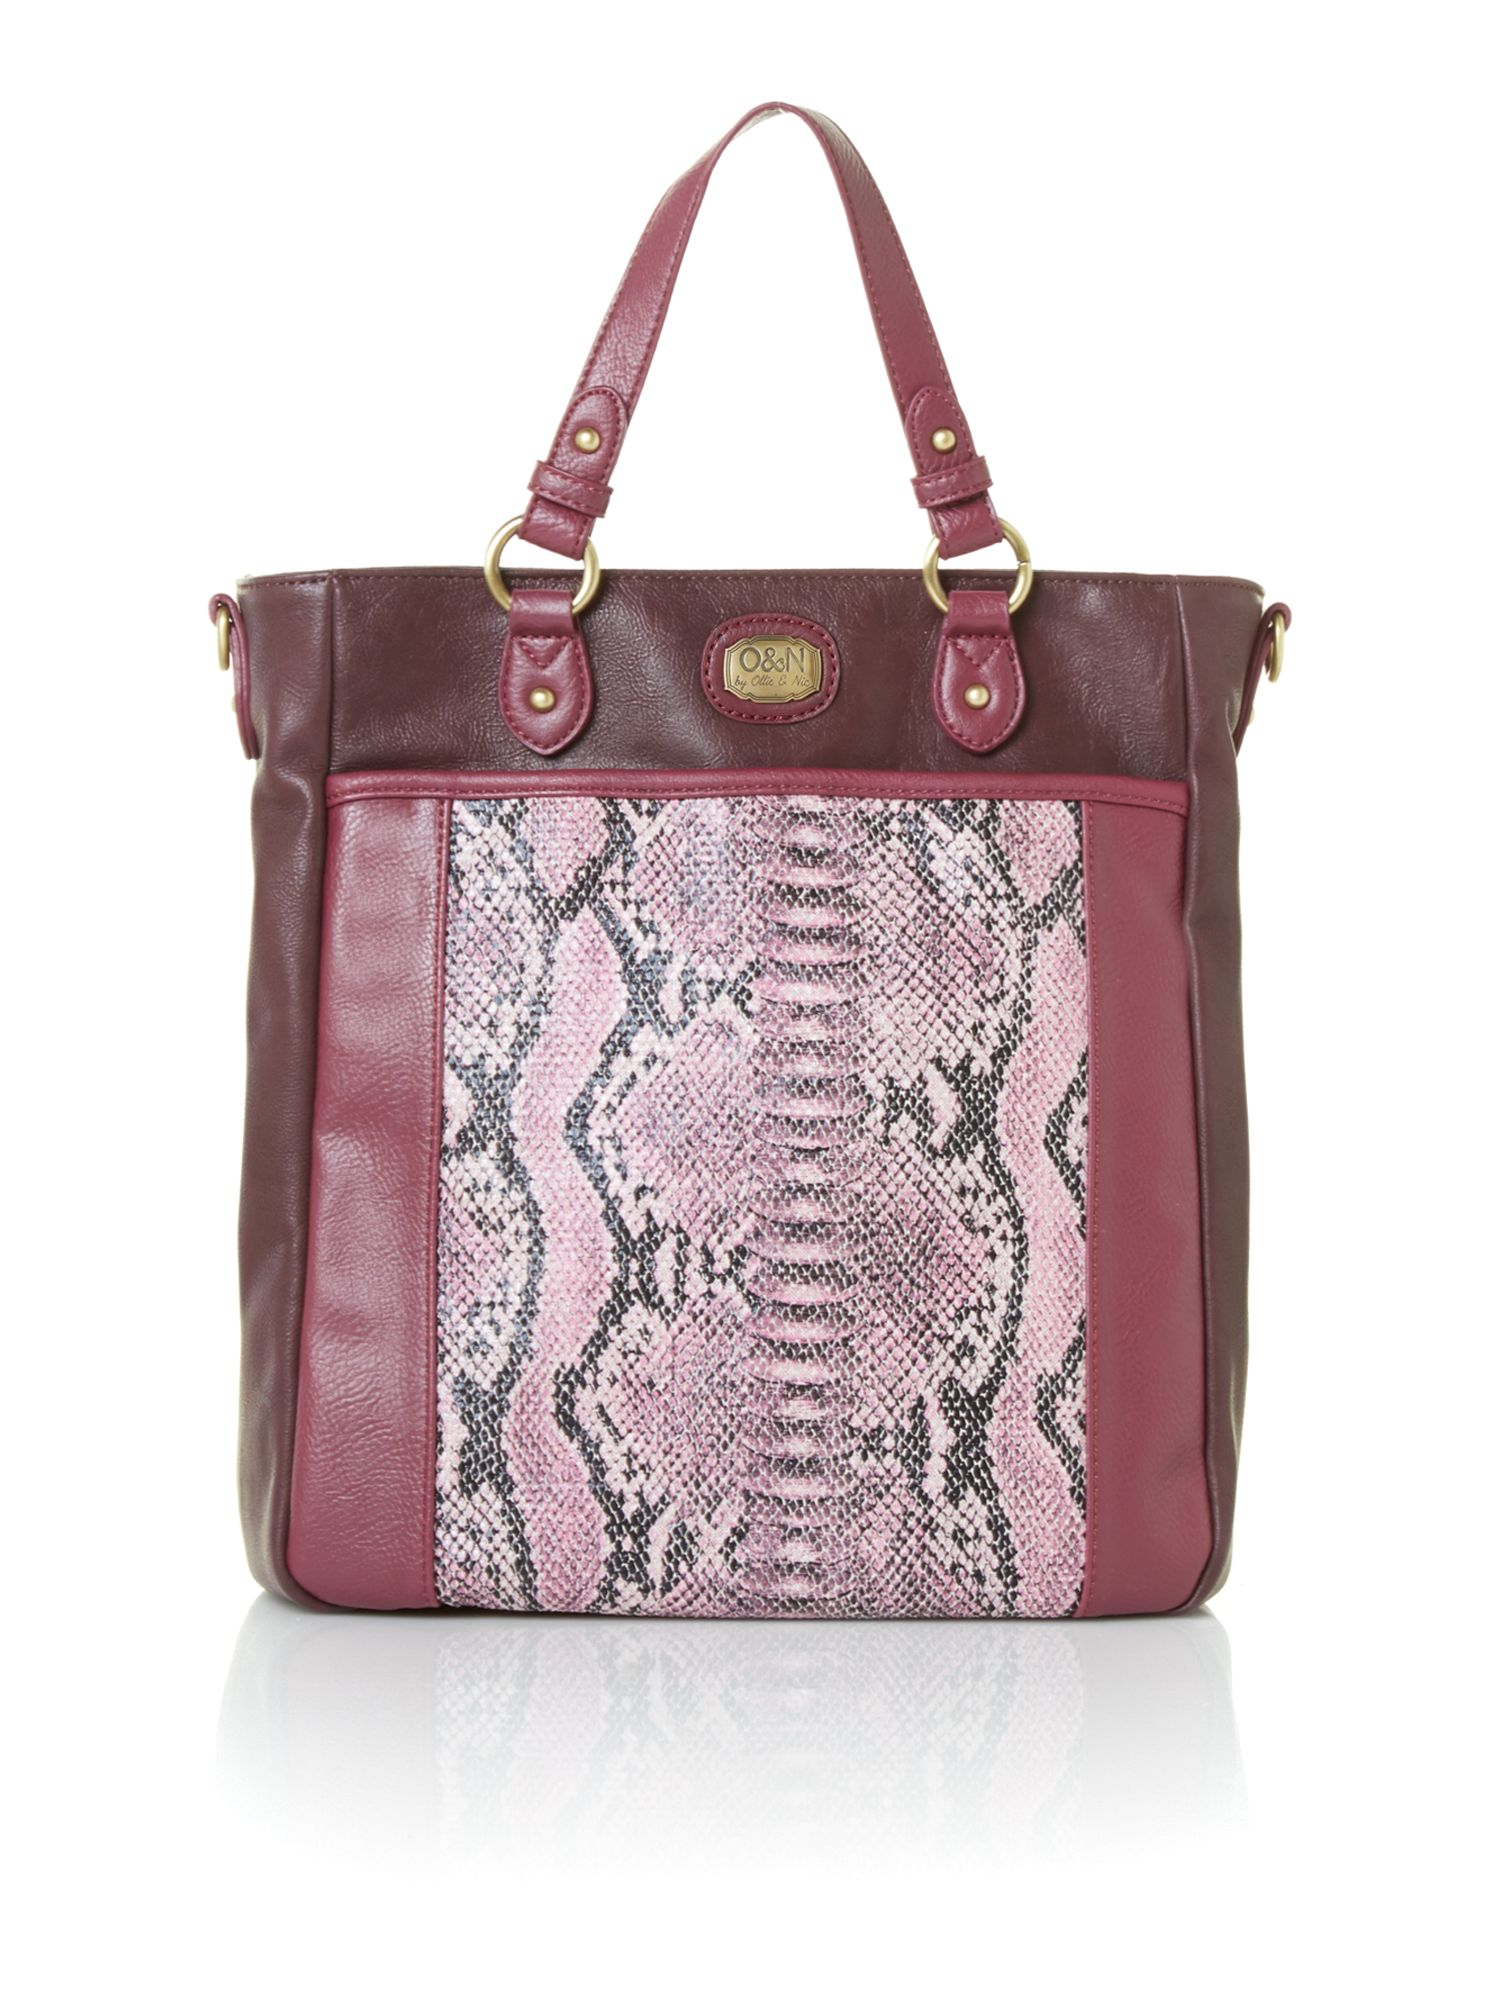 Arthur purple snake print tote bag